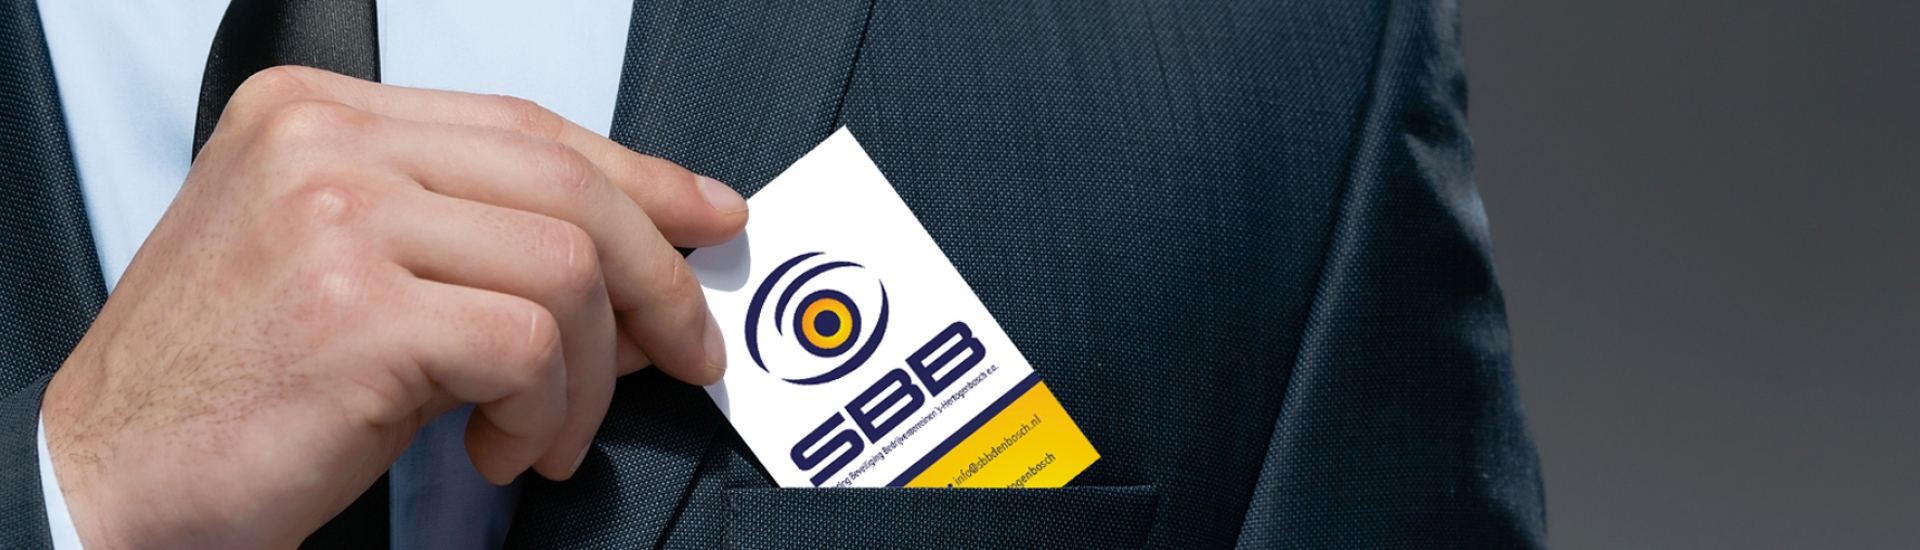 CONTACT SBB